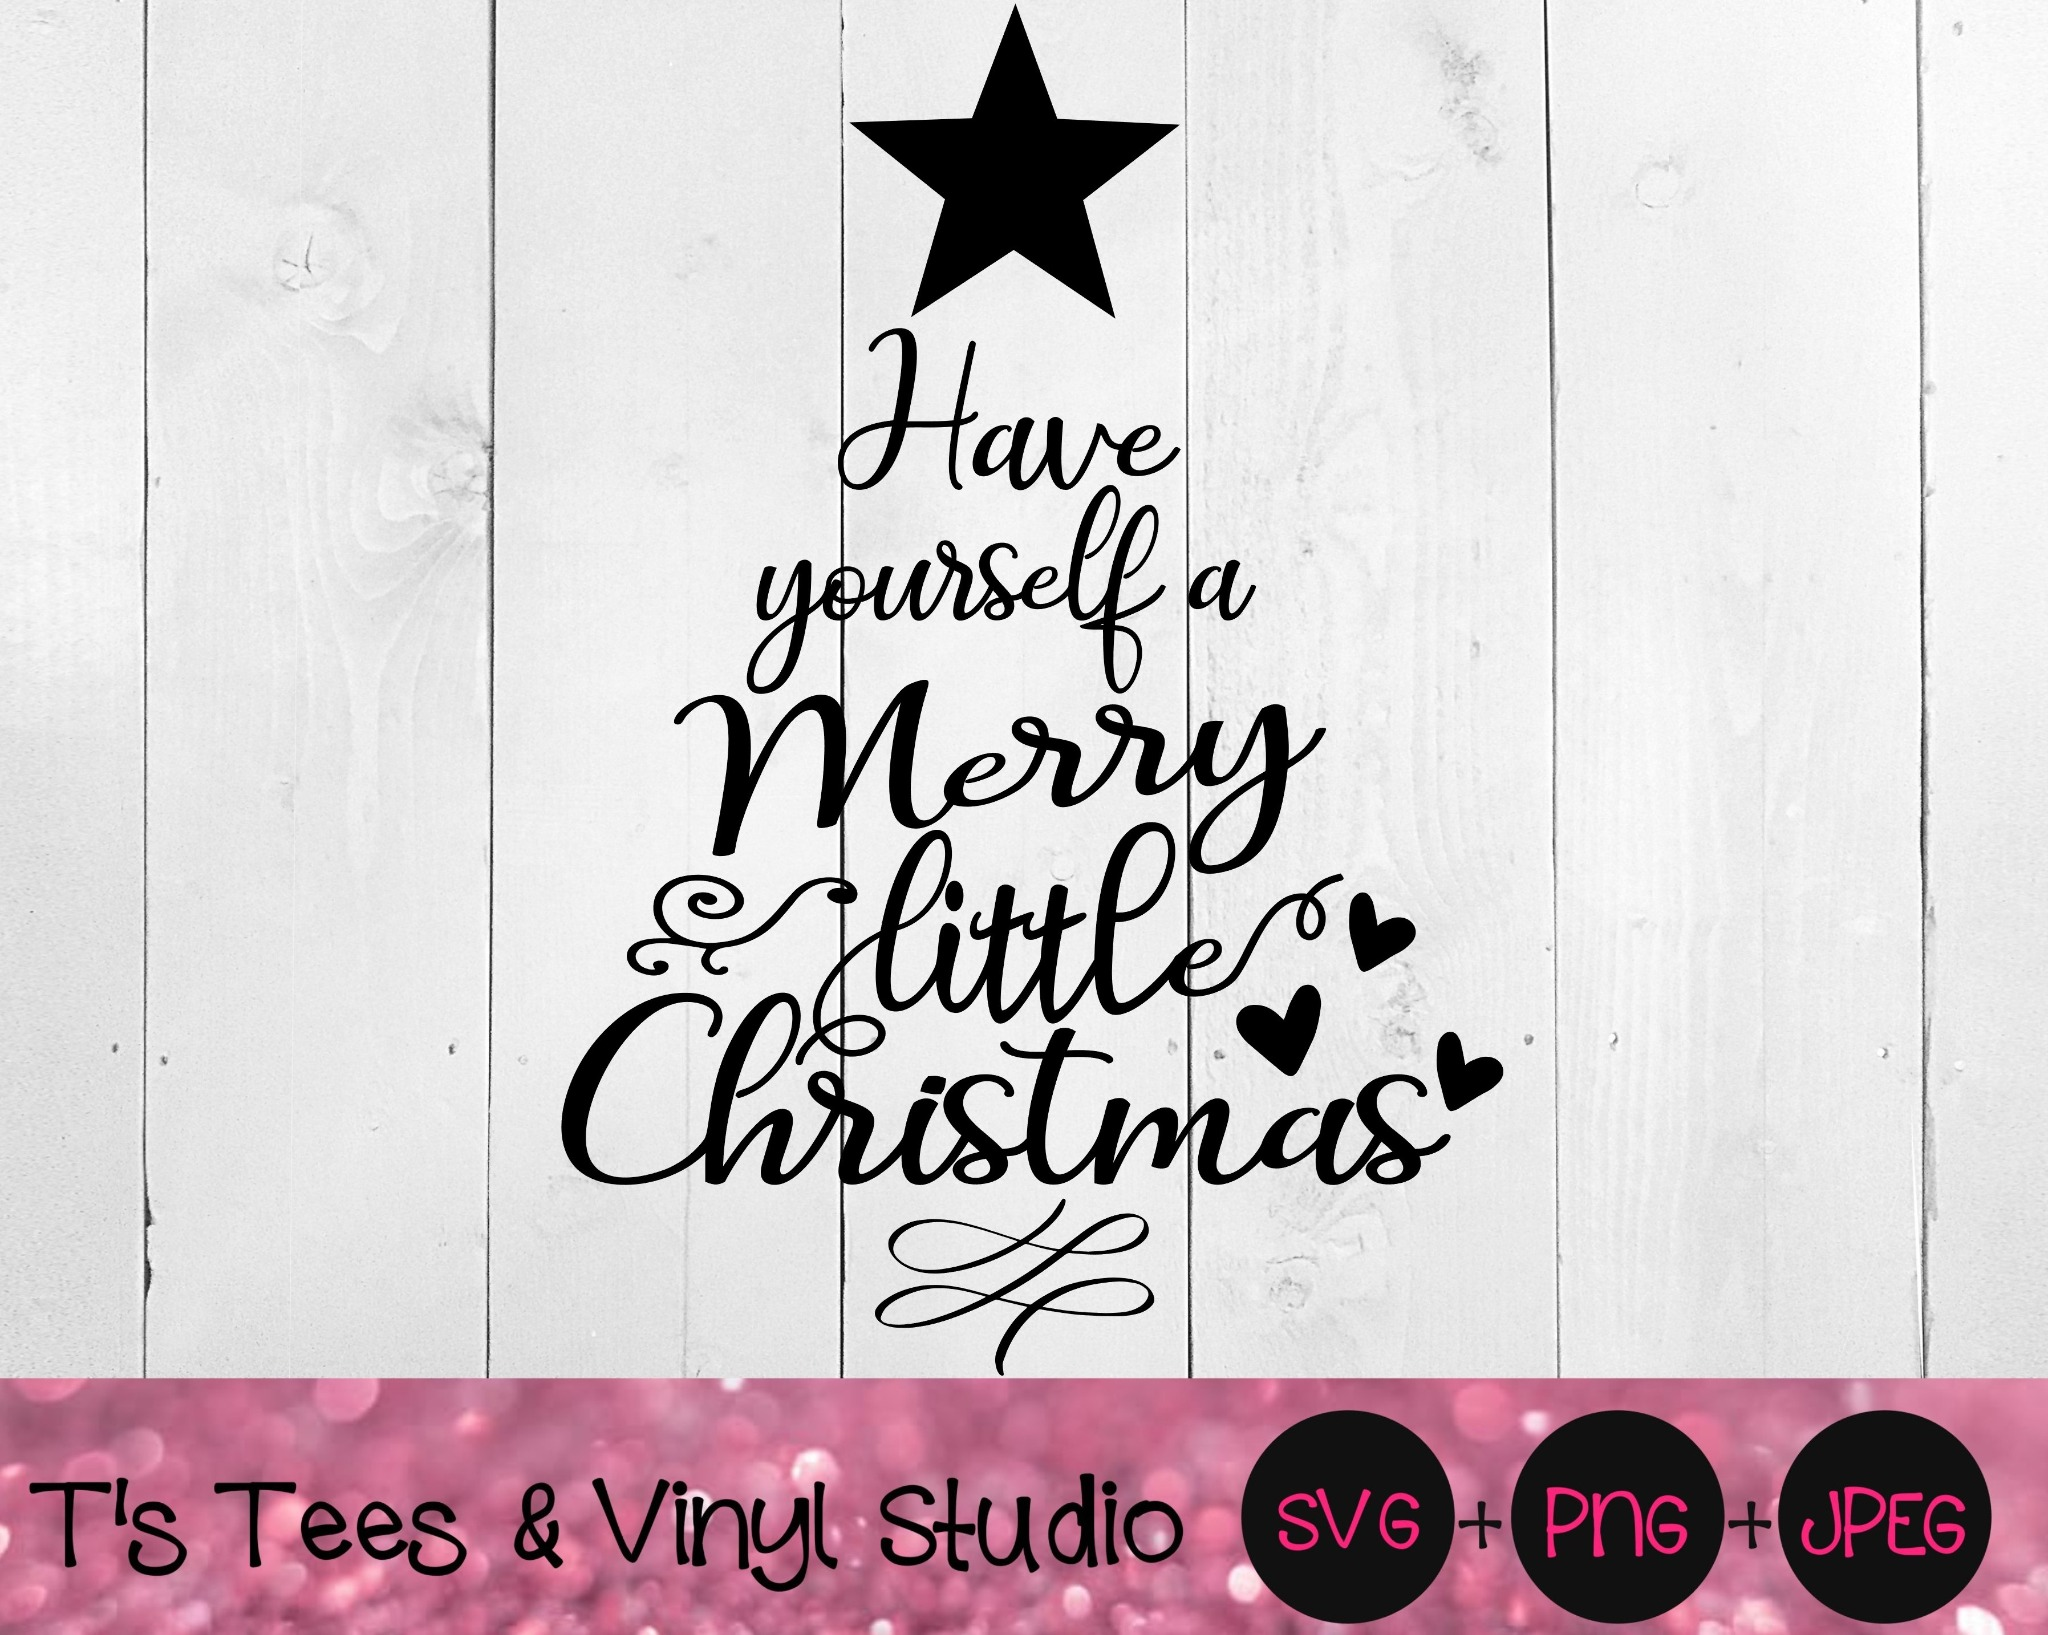 Christmas Svg, Merry Christmas, Christmas Tree, Have Yourself A Merry Little Christmas, Holiday Chee